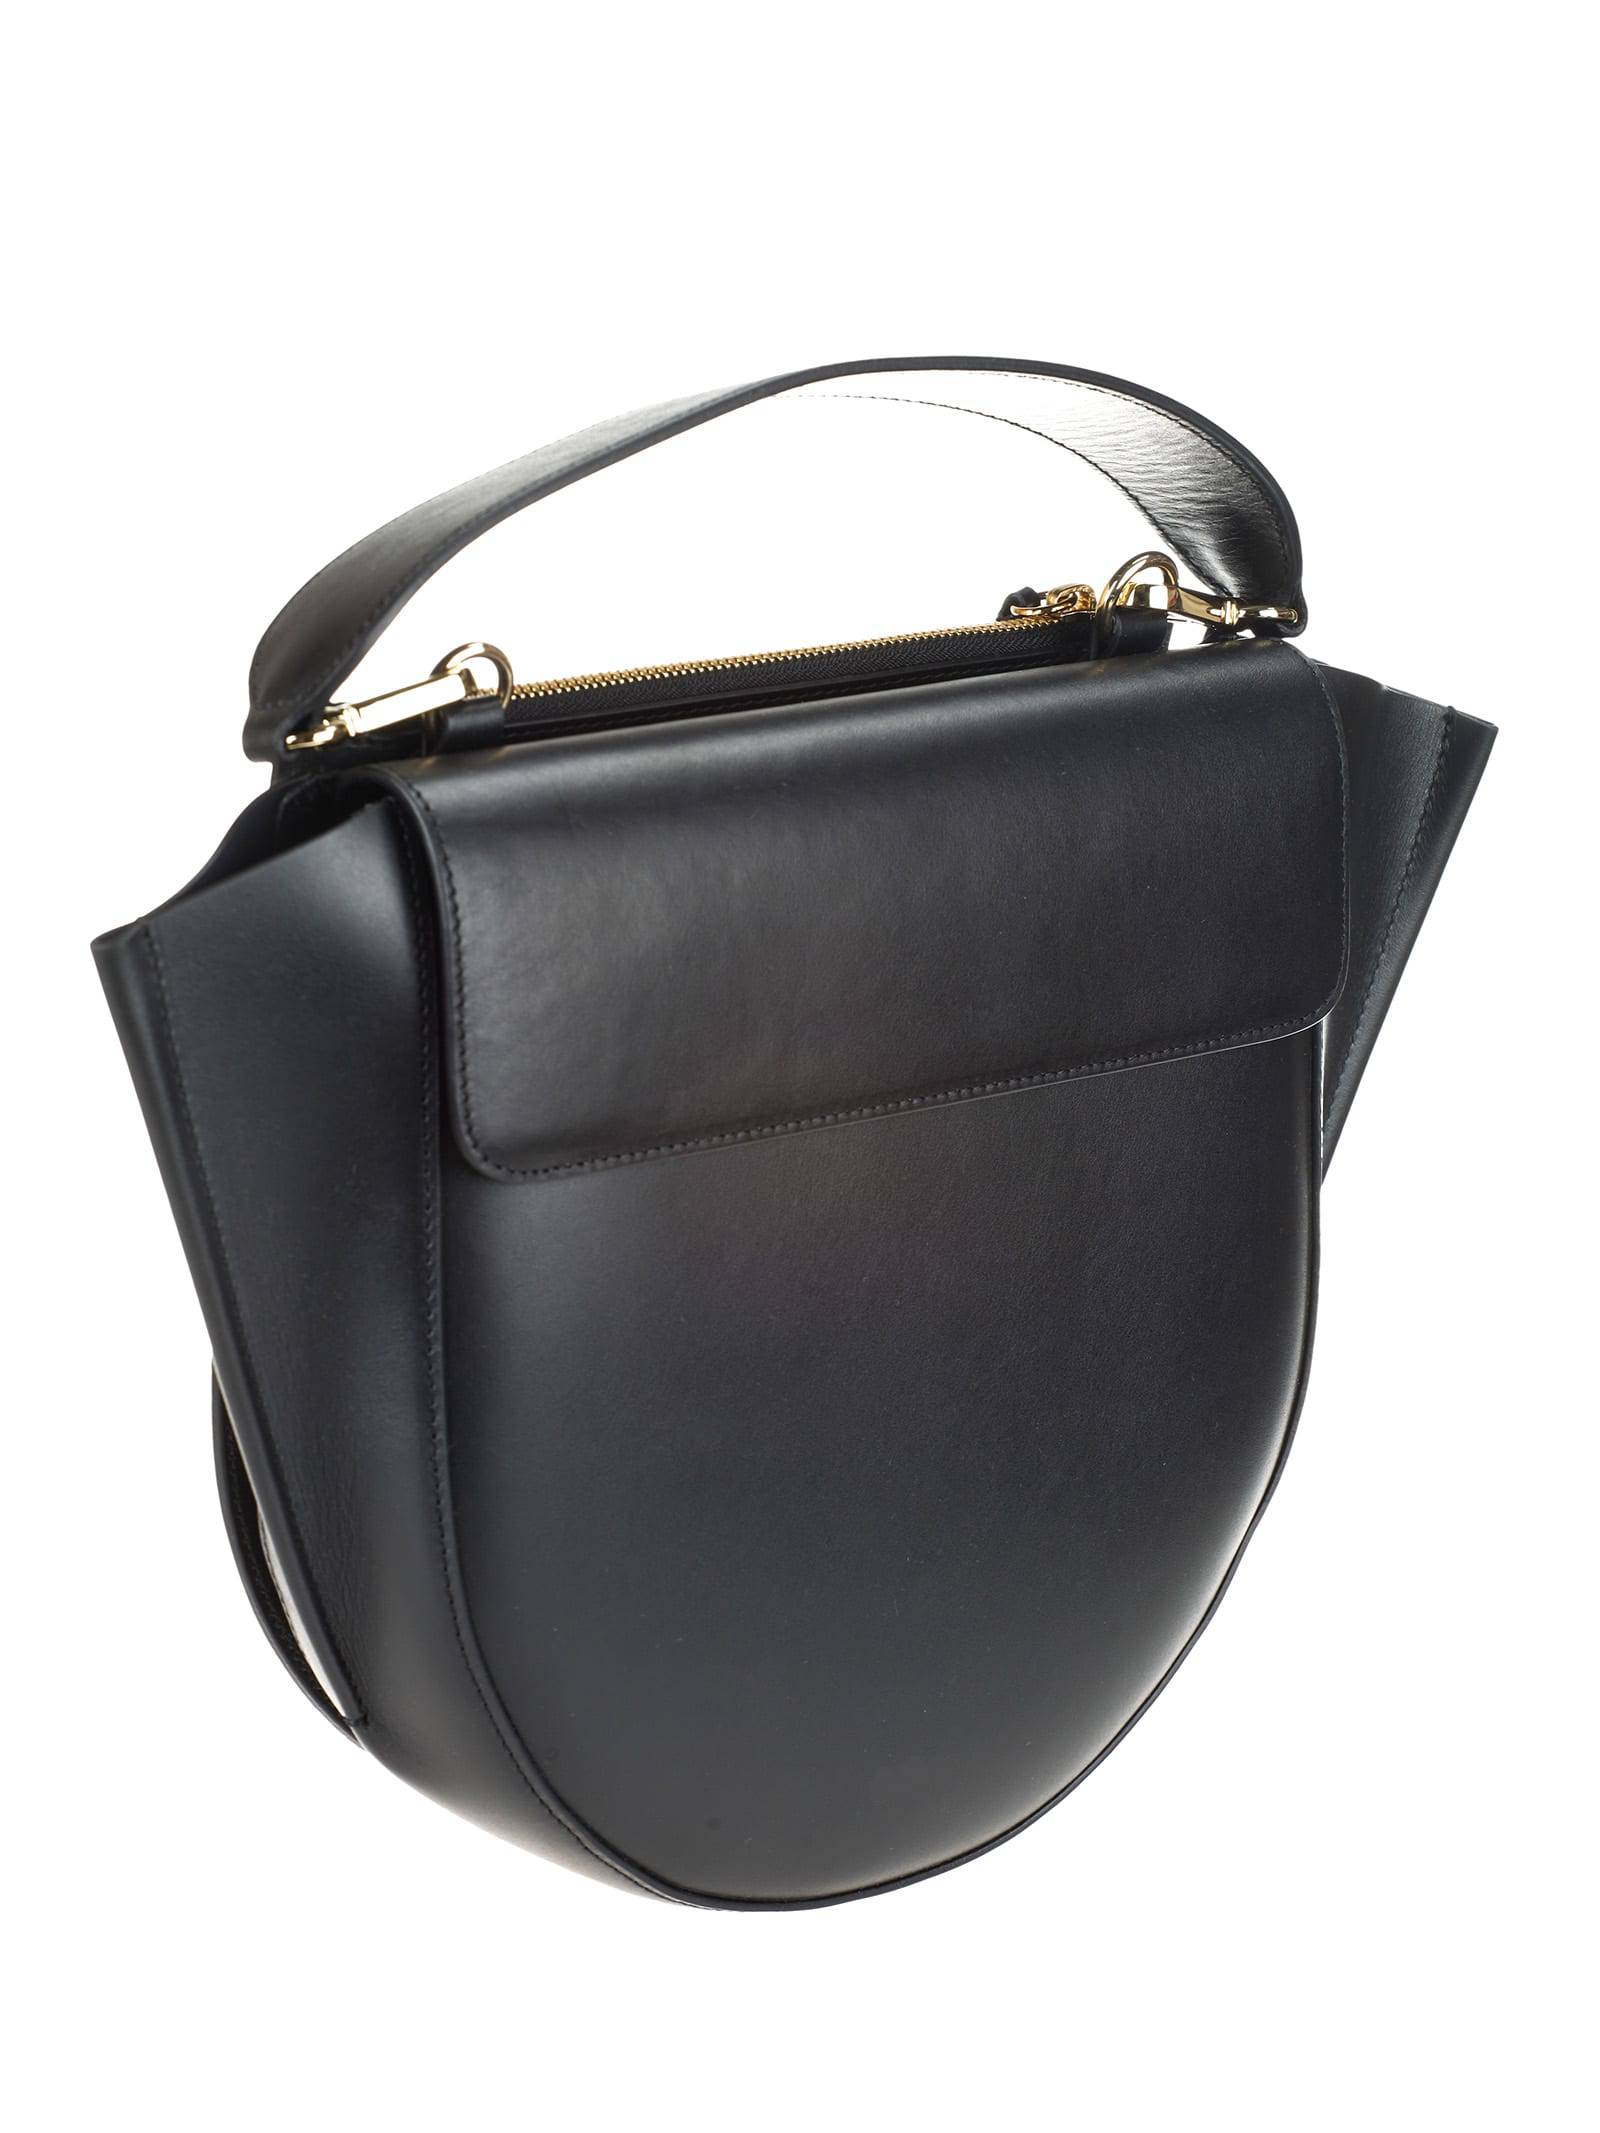 Pescara Saddle Bag - Carbon